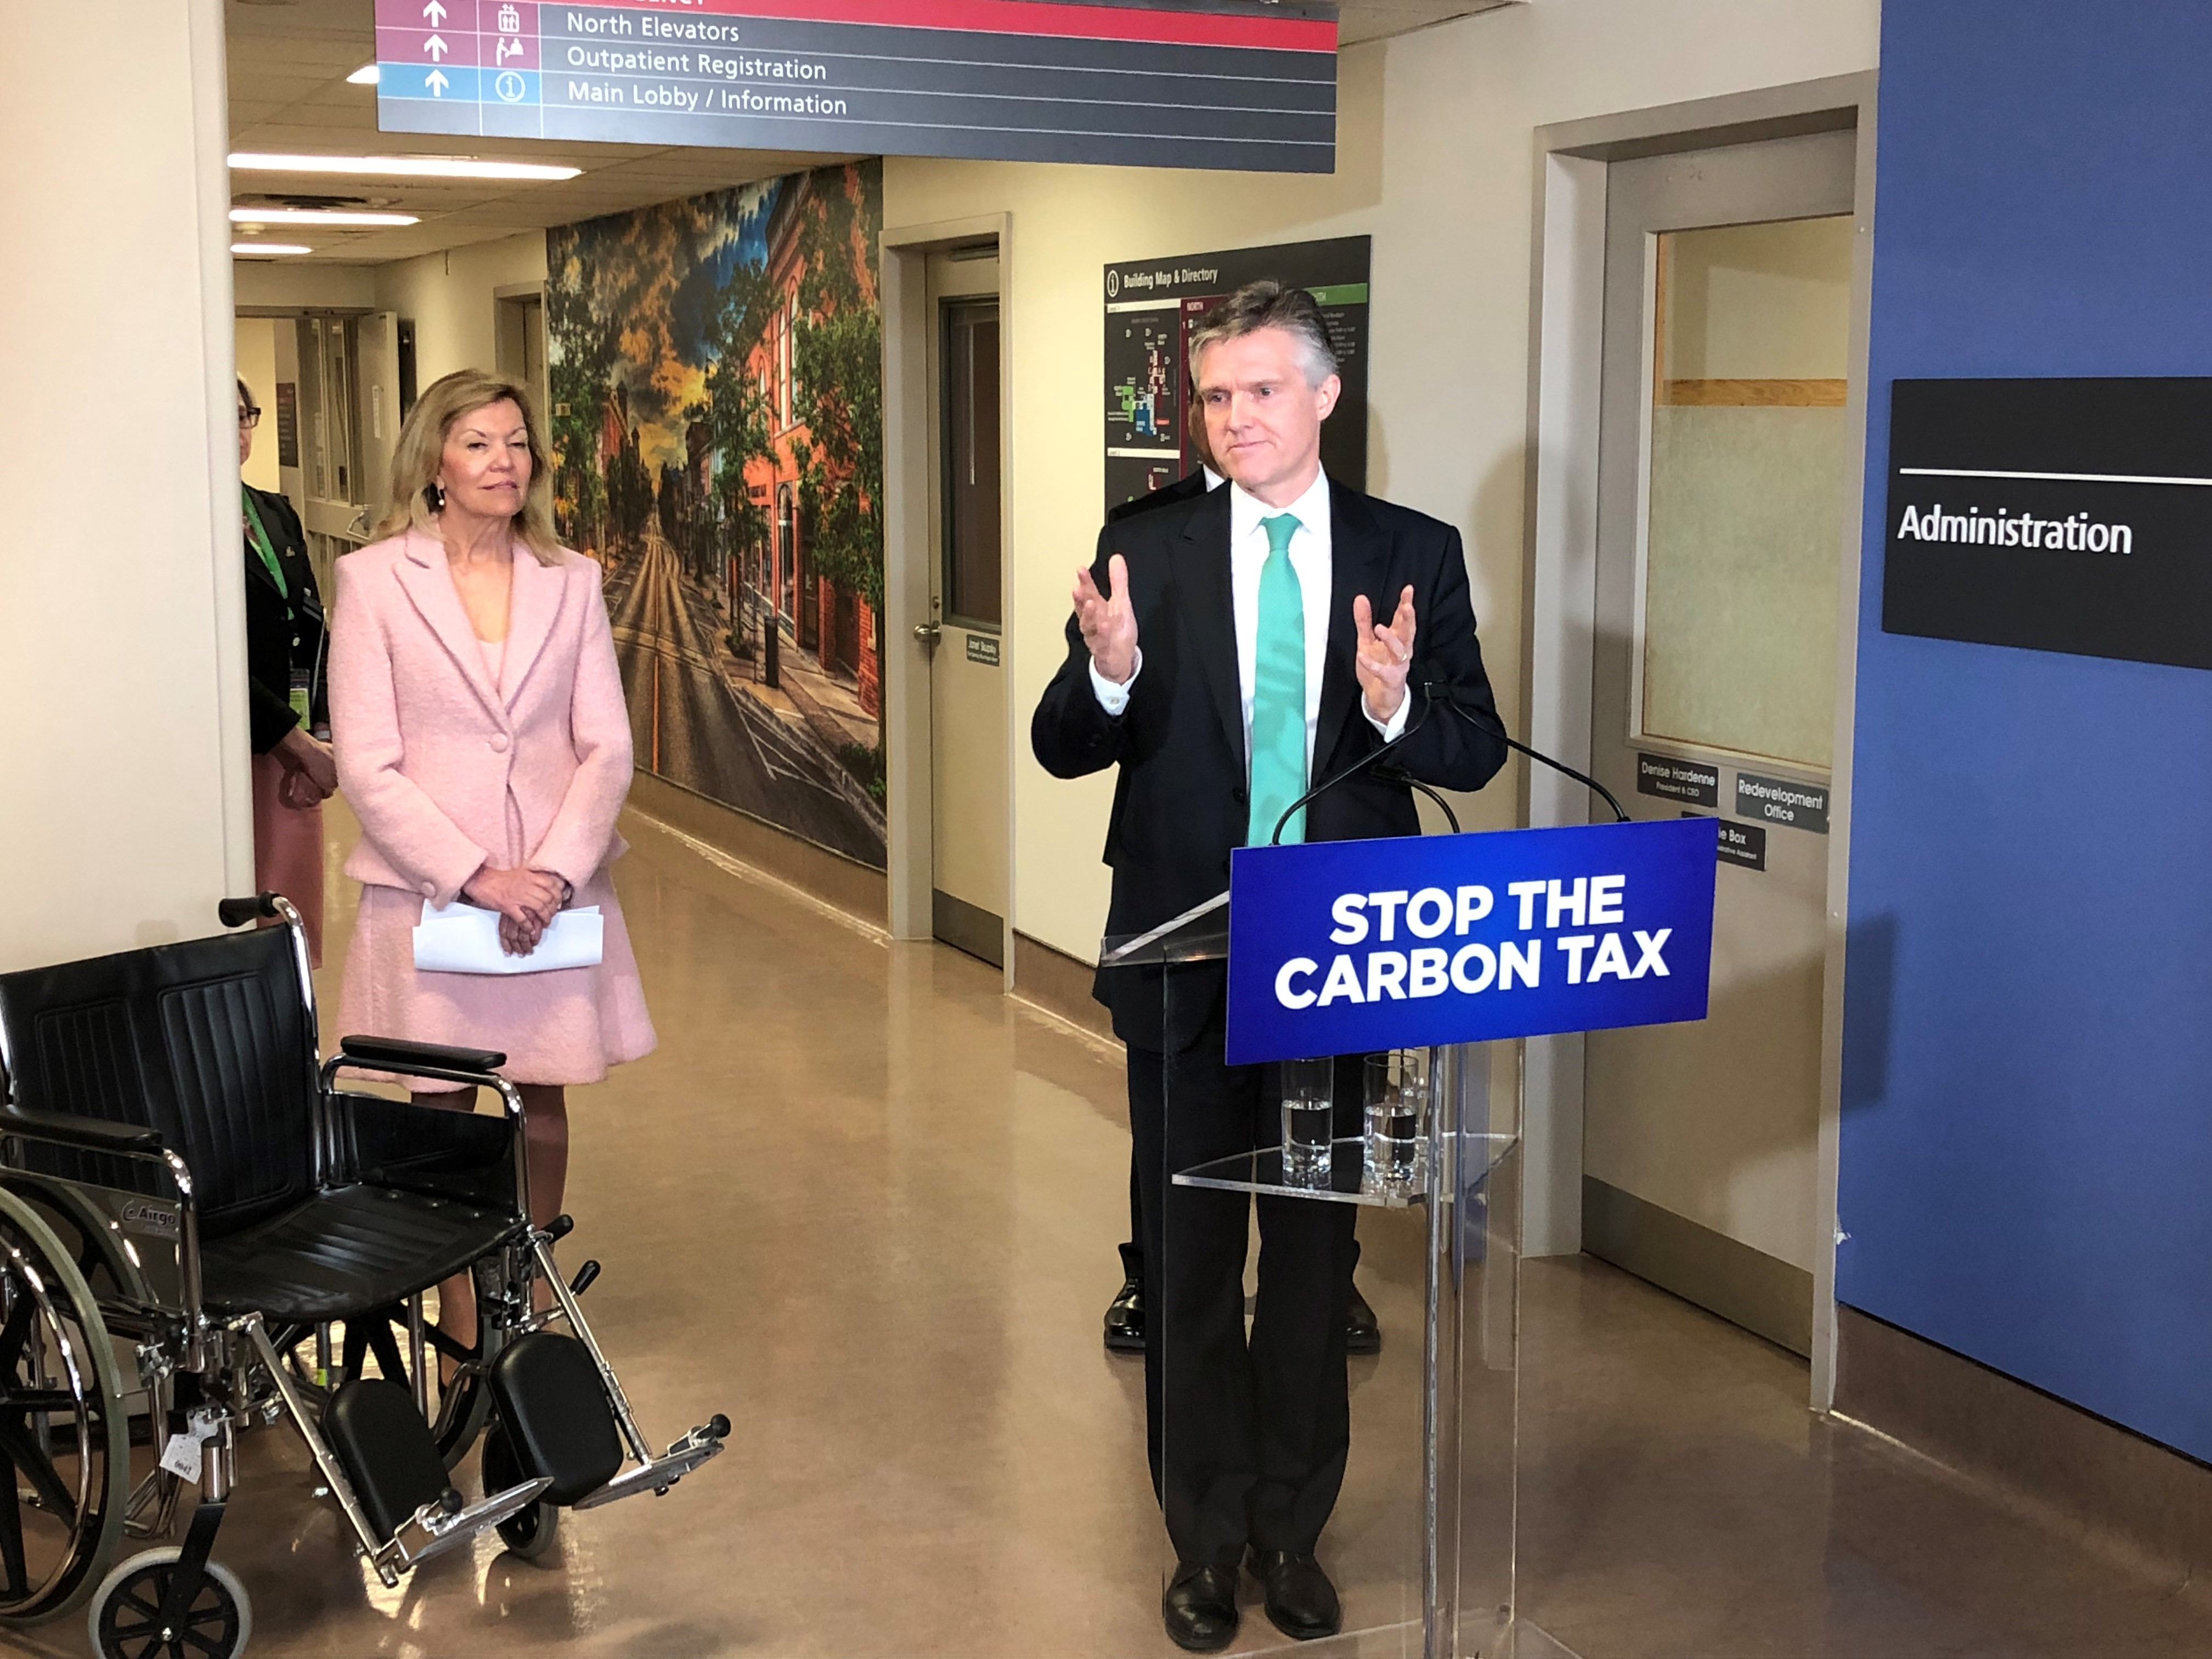 Manitoba joins two other provinces challenging federal carbon tax in court